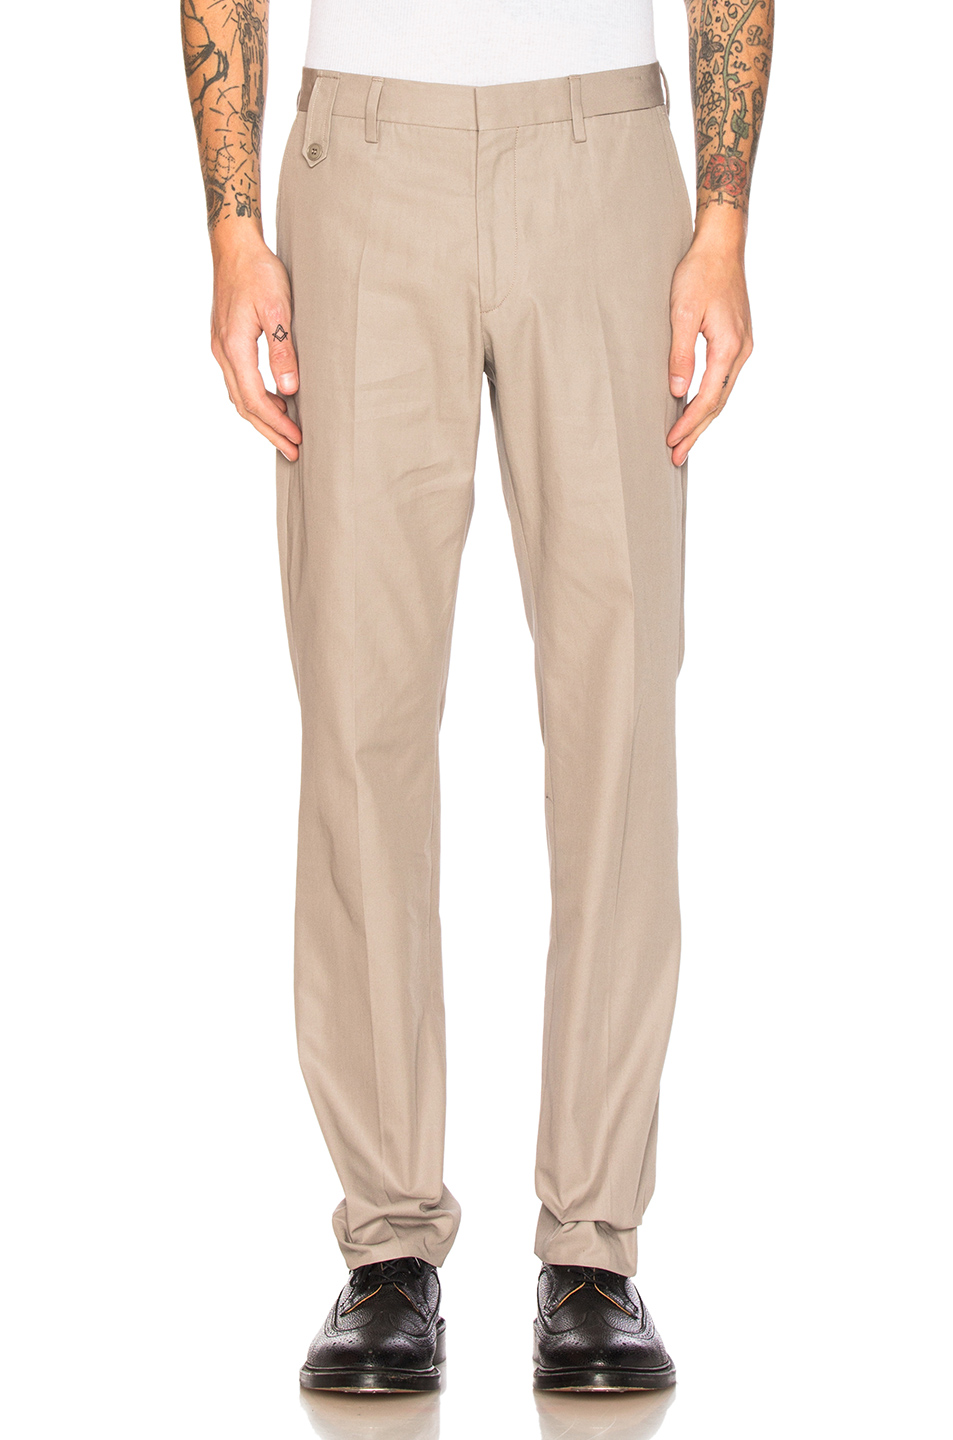 Stella McCartneyTrousers in Gray